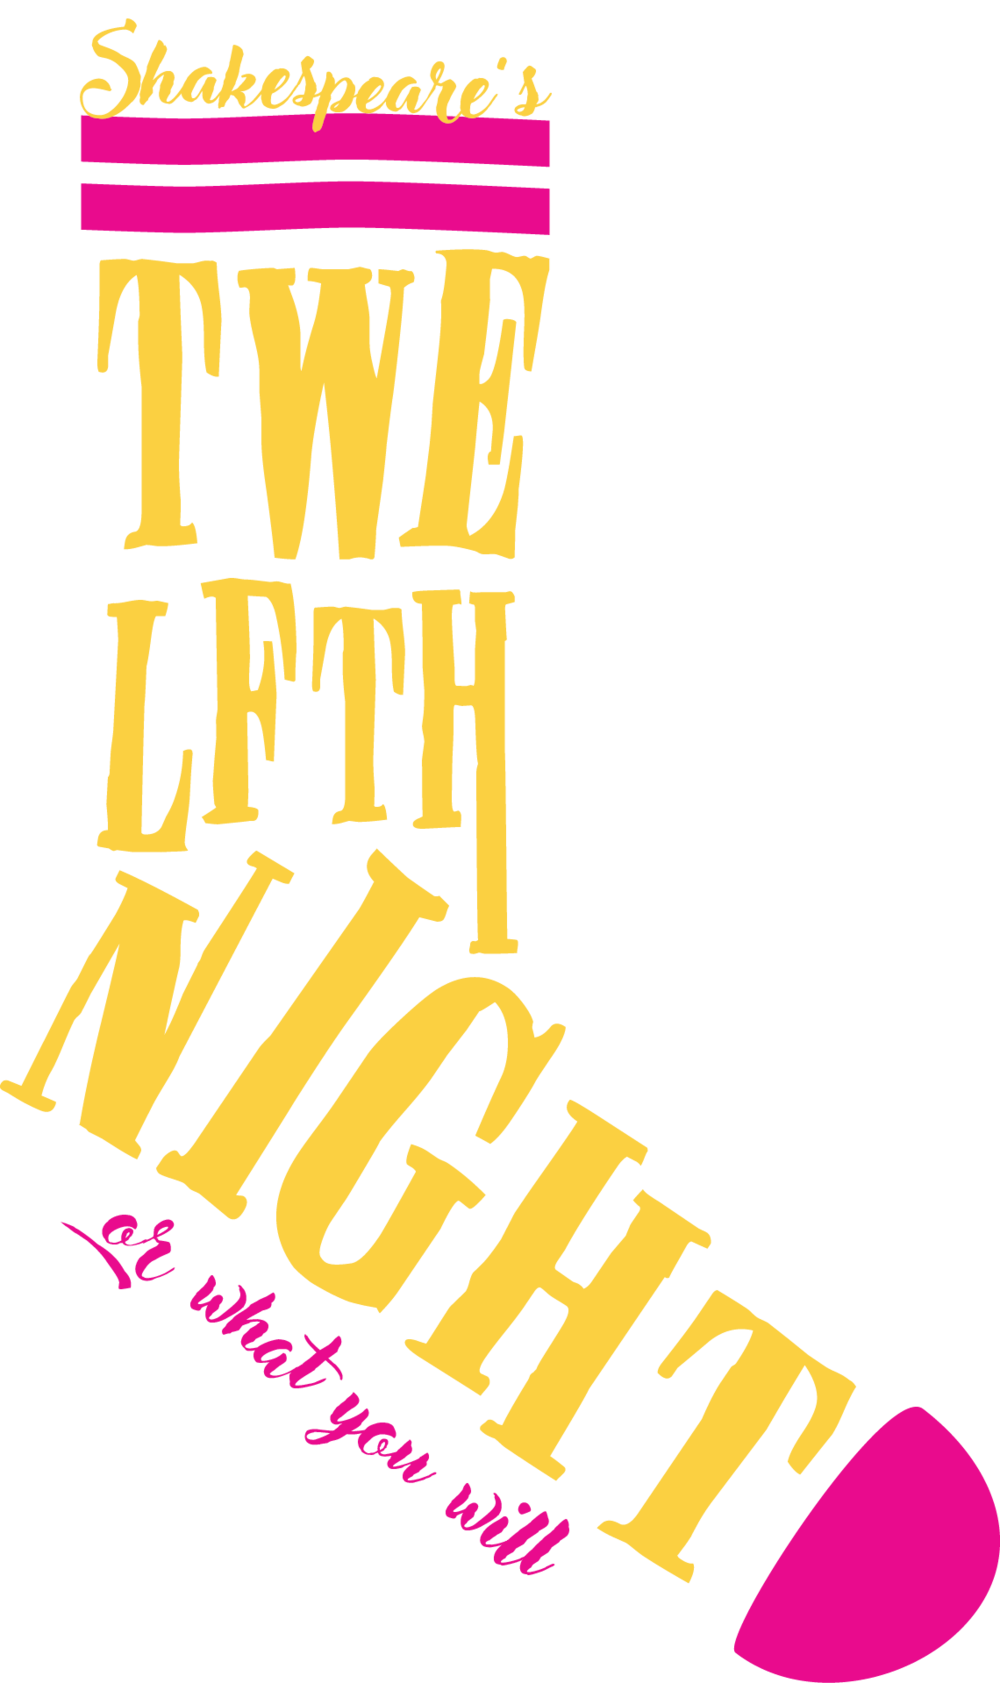 Twelfth Night: Or What You Will  Title Treatment Concept Design